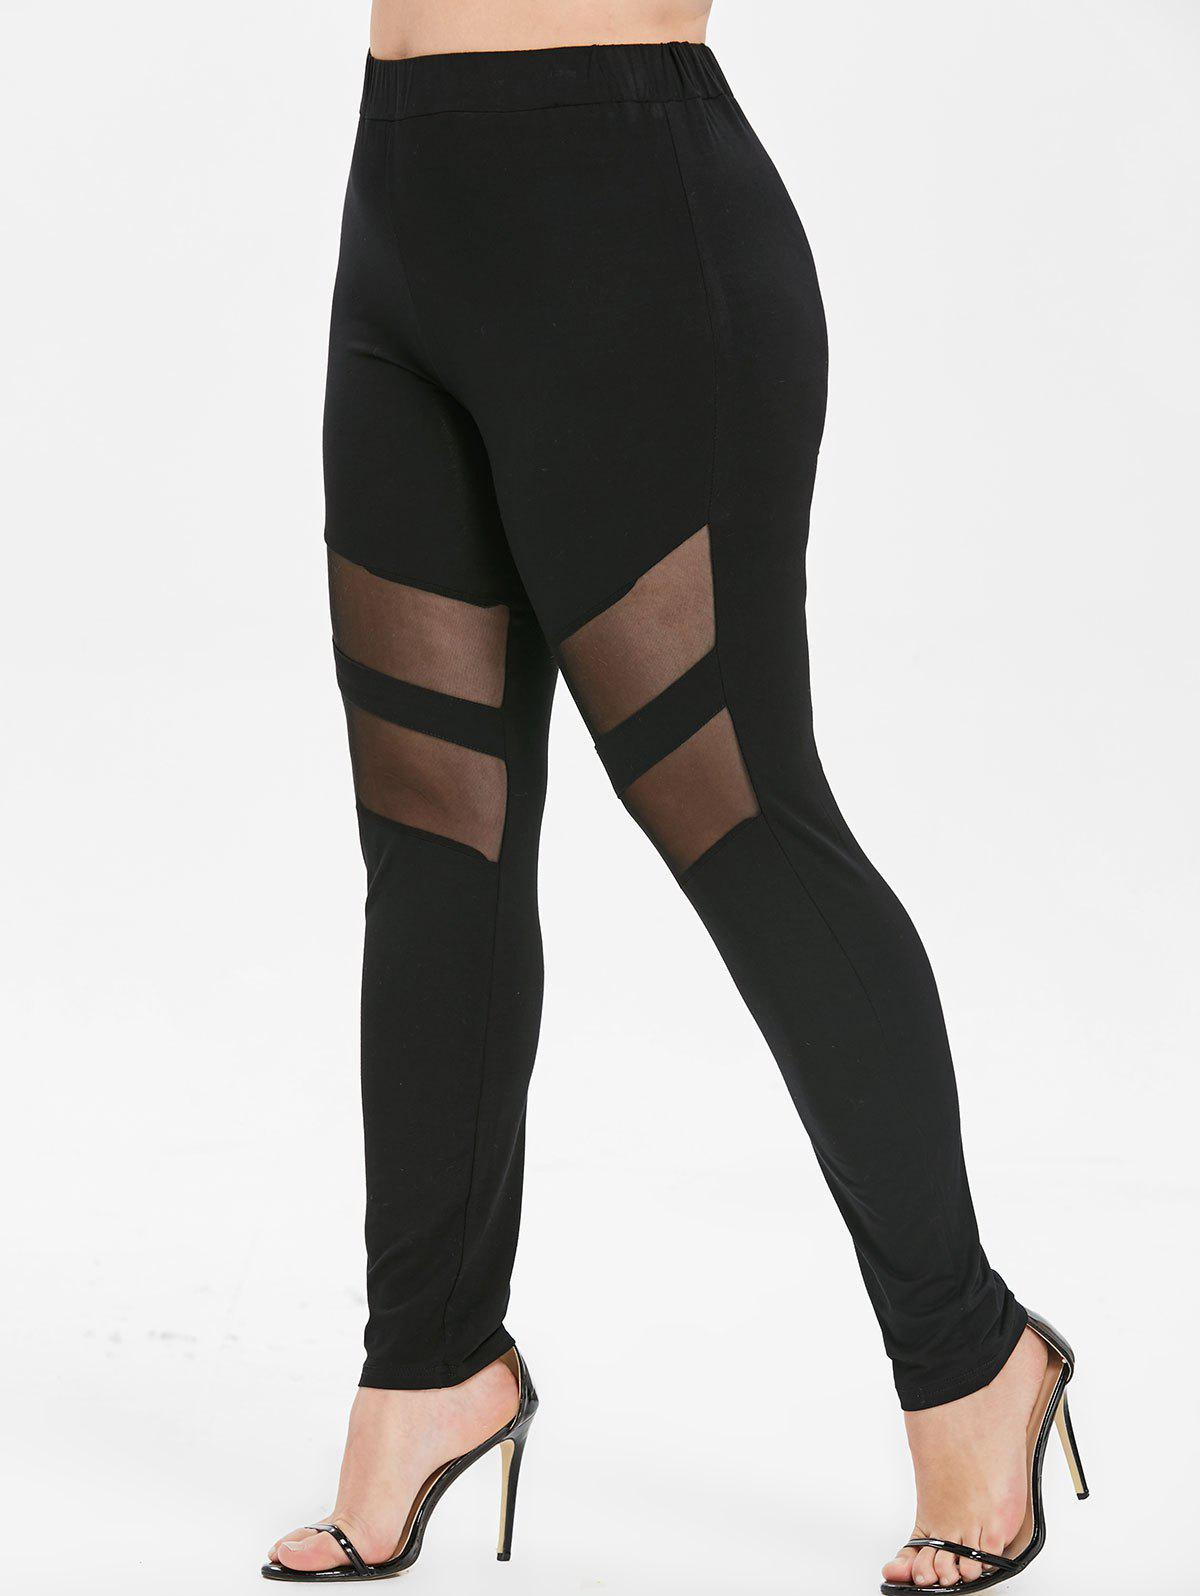 Plus Size Mesh Insert Skinny Leggings - BLACK L